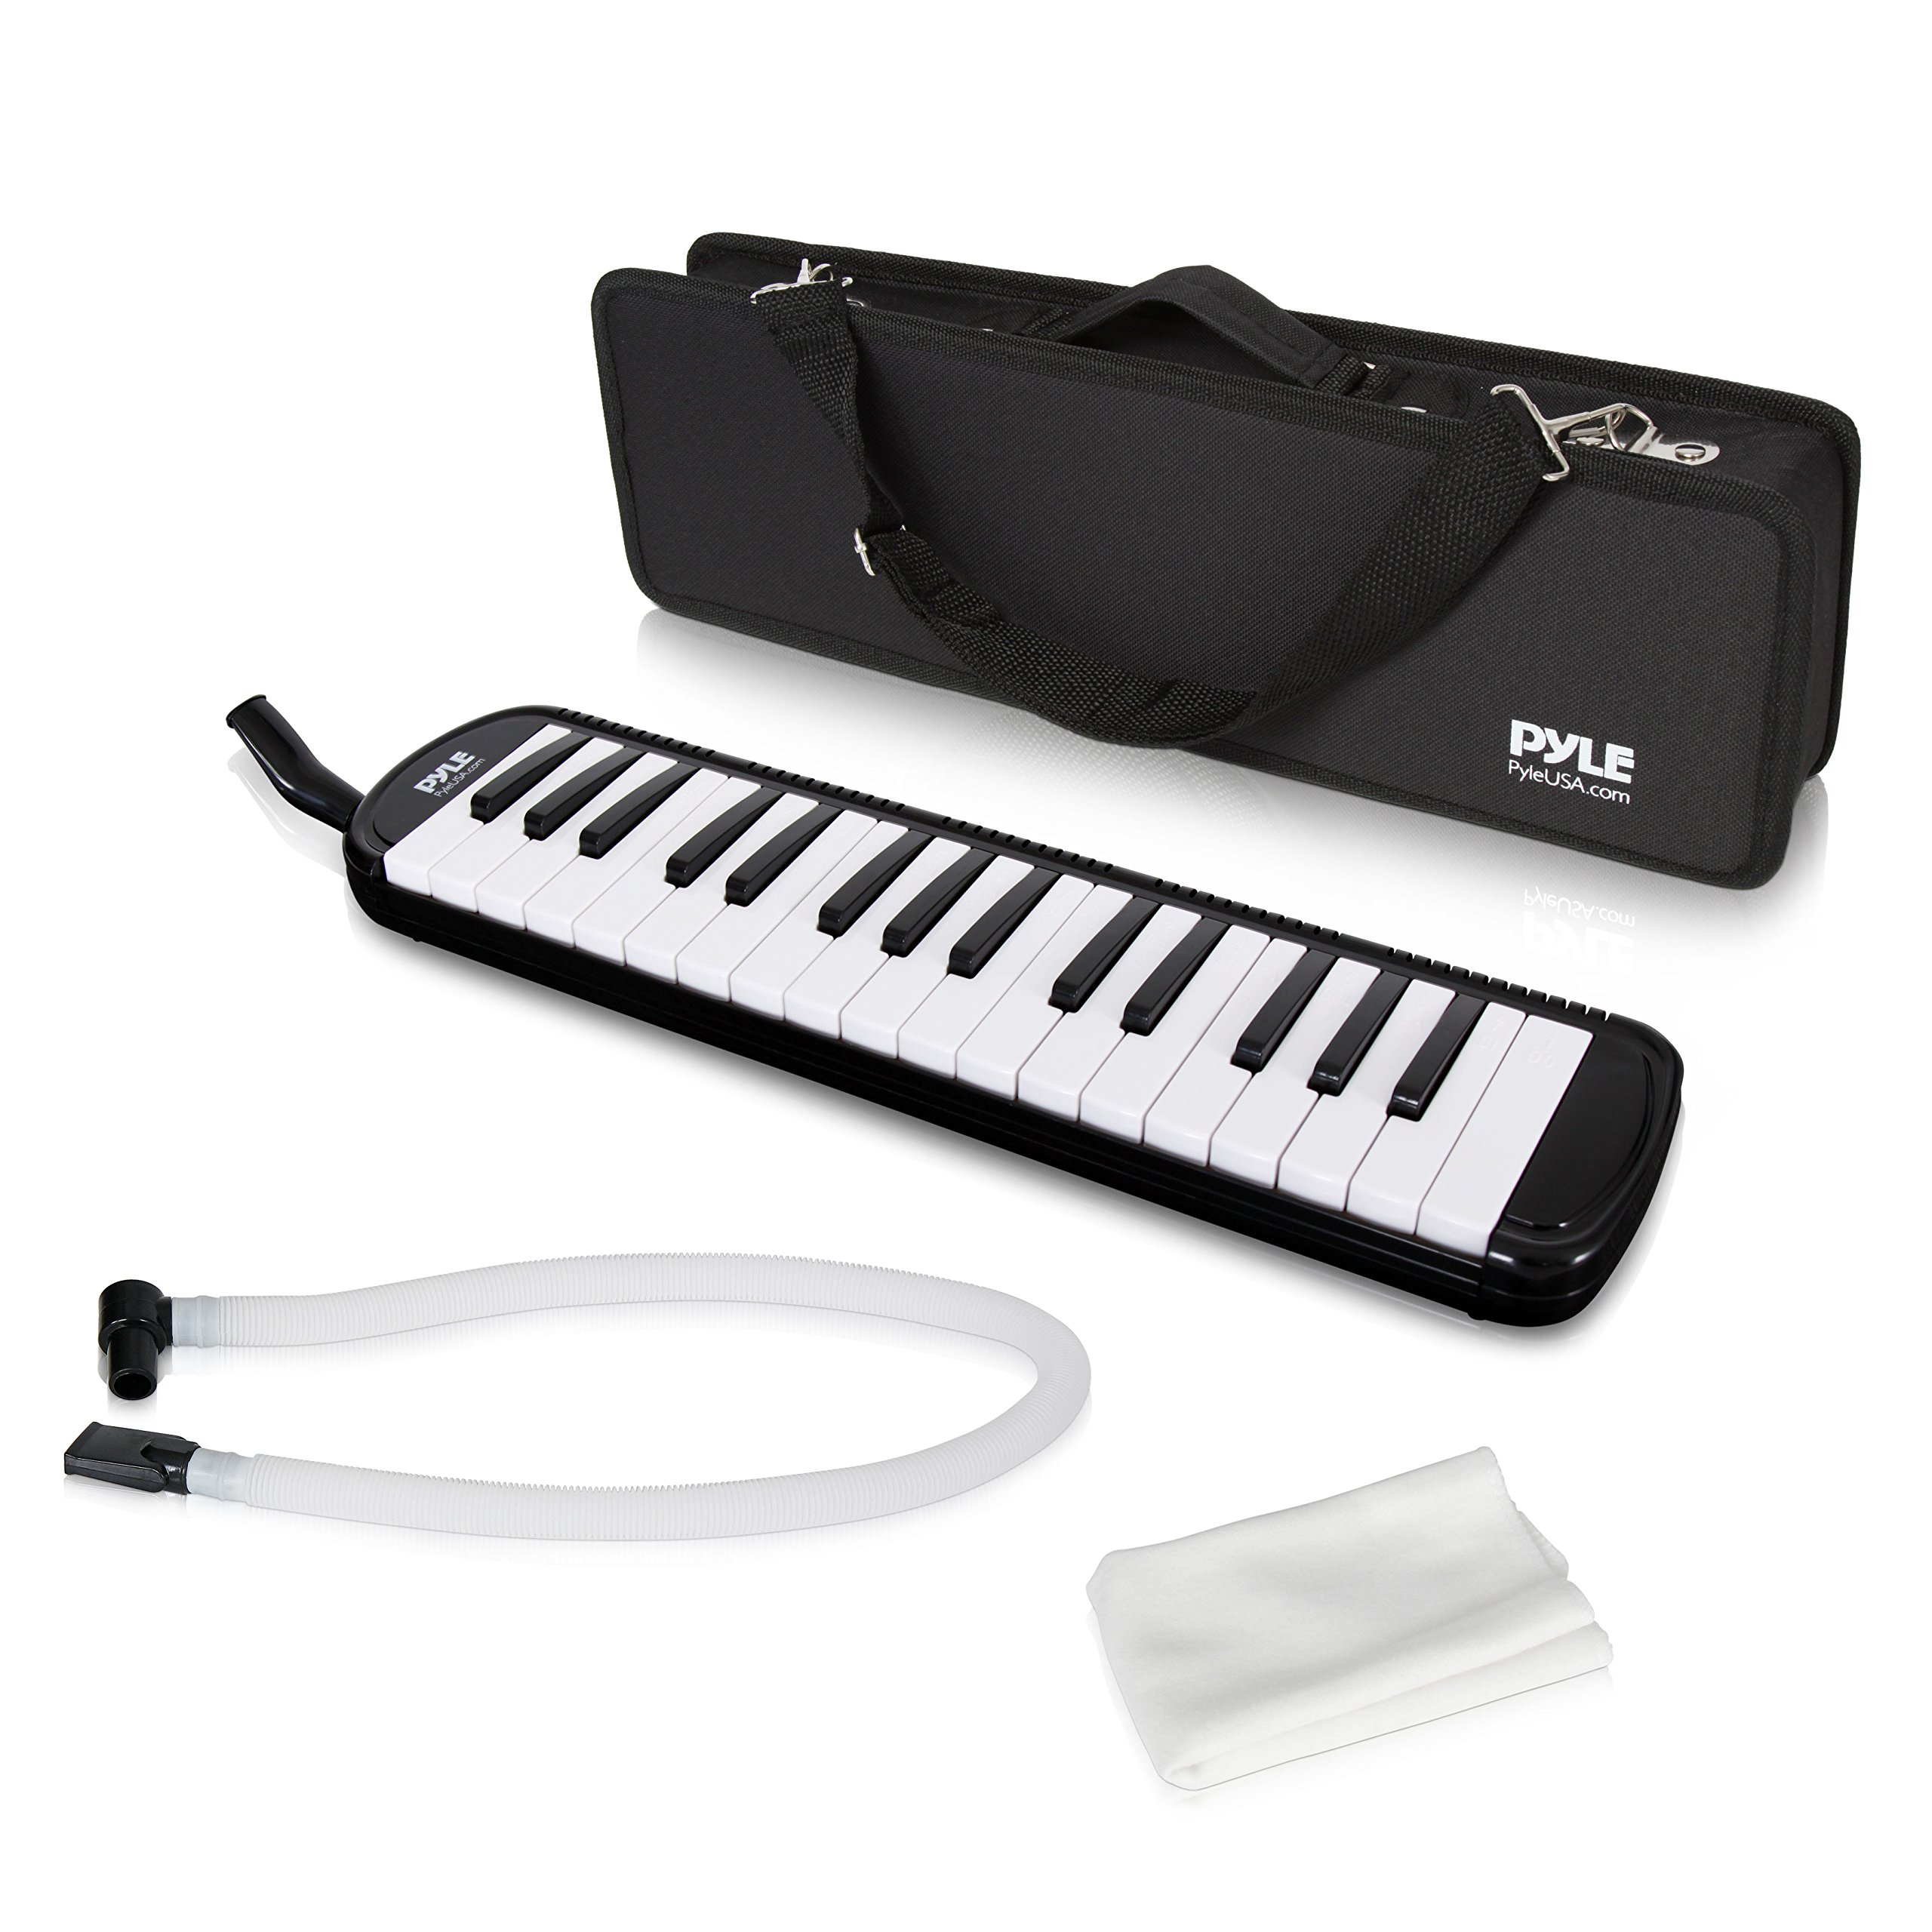 Pyle Black Professional Keyboard Harmonica Instrument - Also Called Mouth Organ, Wind Piano - Tremolo Key Melodica Kit Set Includes Mouthpiece, Tube Accessories - Great for Beginner or Band - PMLD12BK